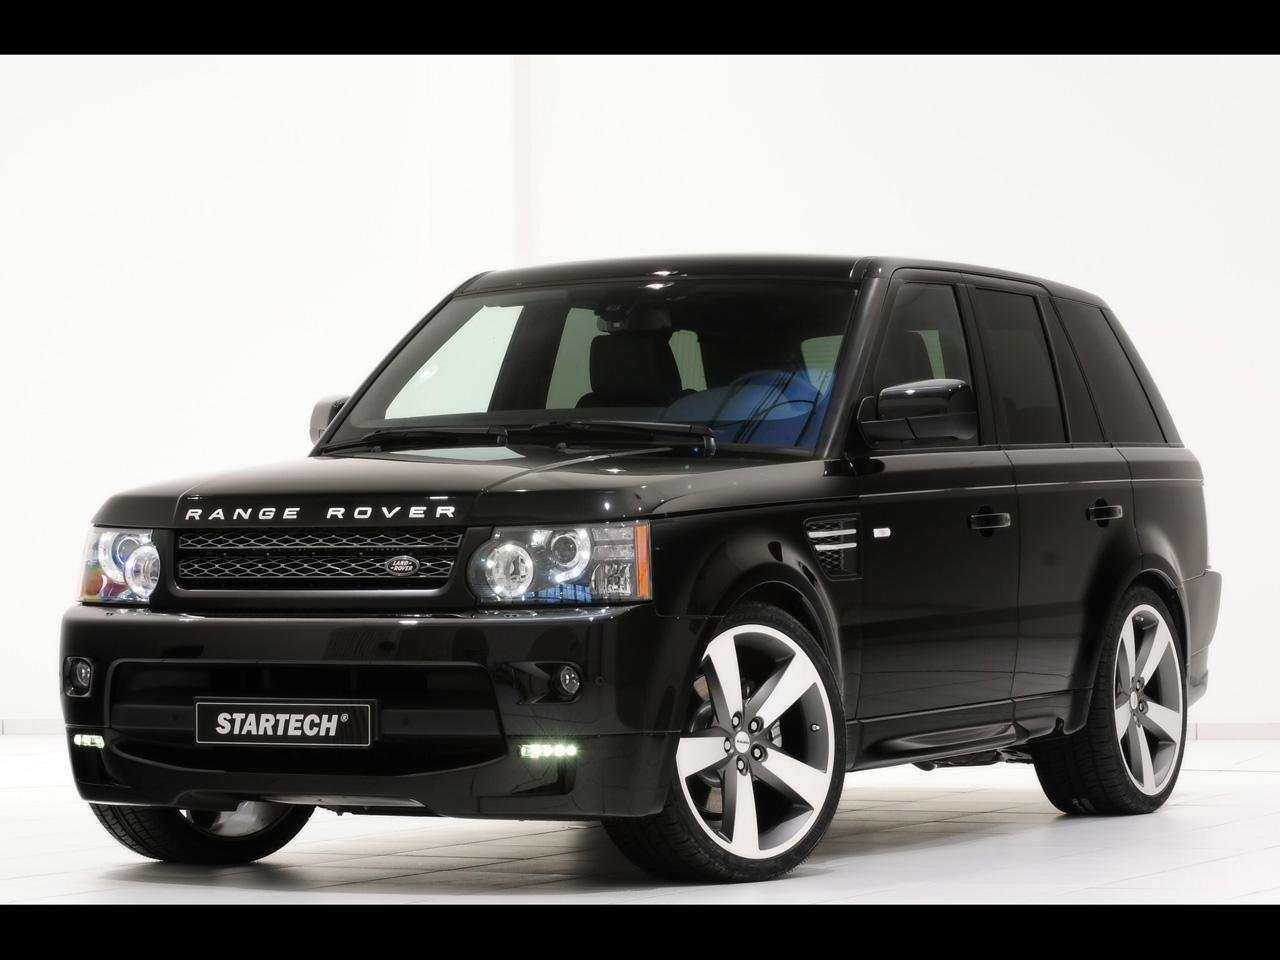 New 2010 Startech Land Rover Range Rover Wallpapers By Cars On This Month